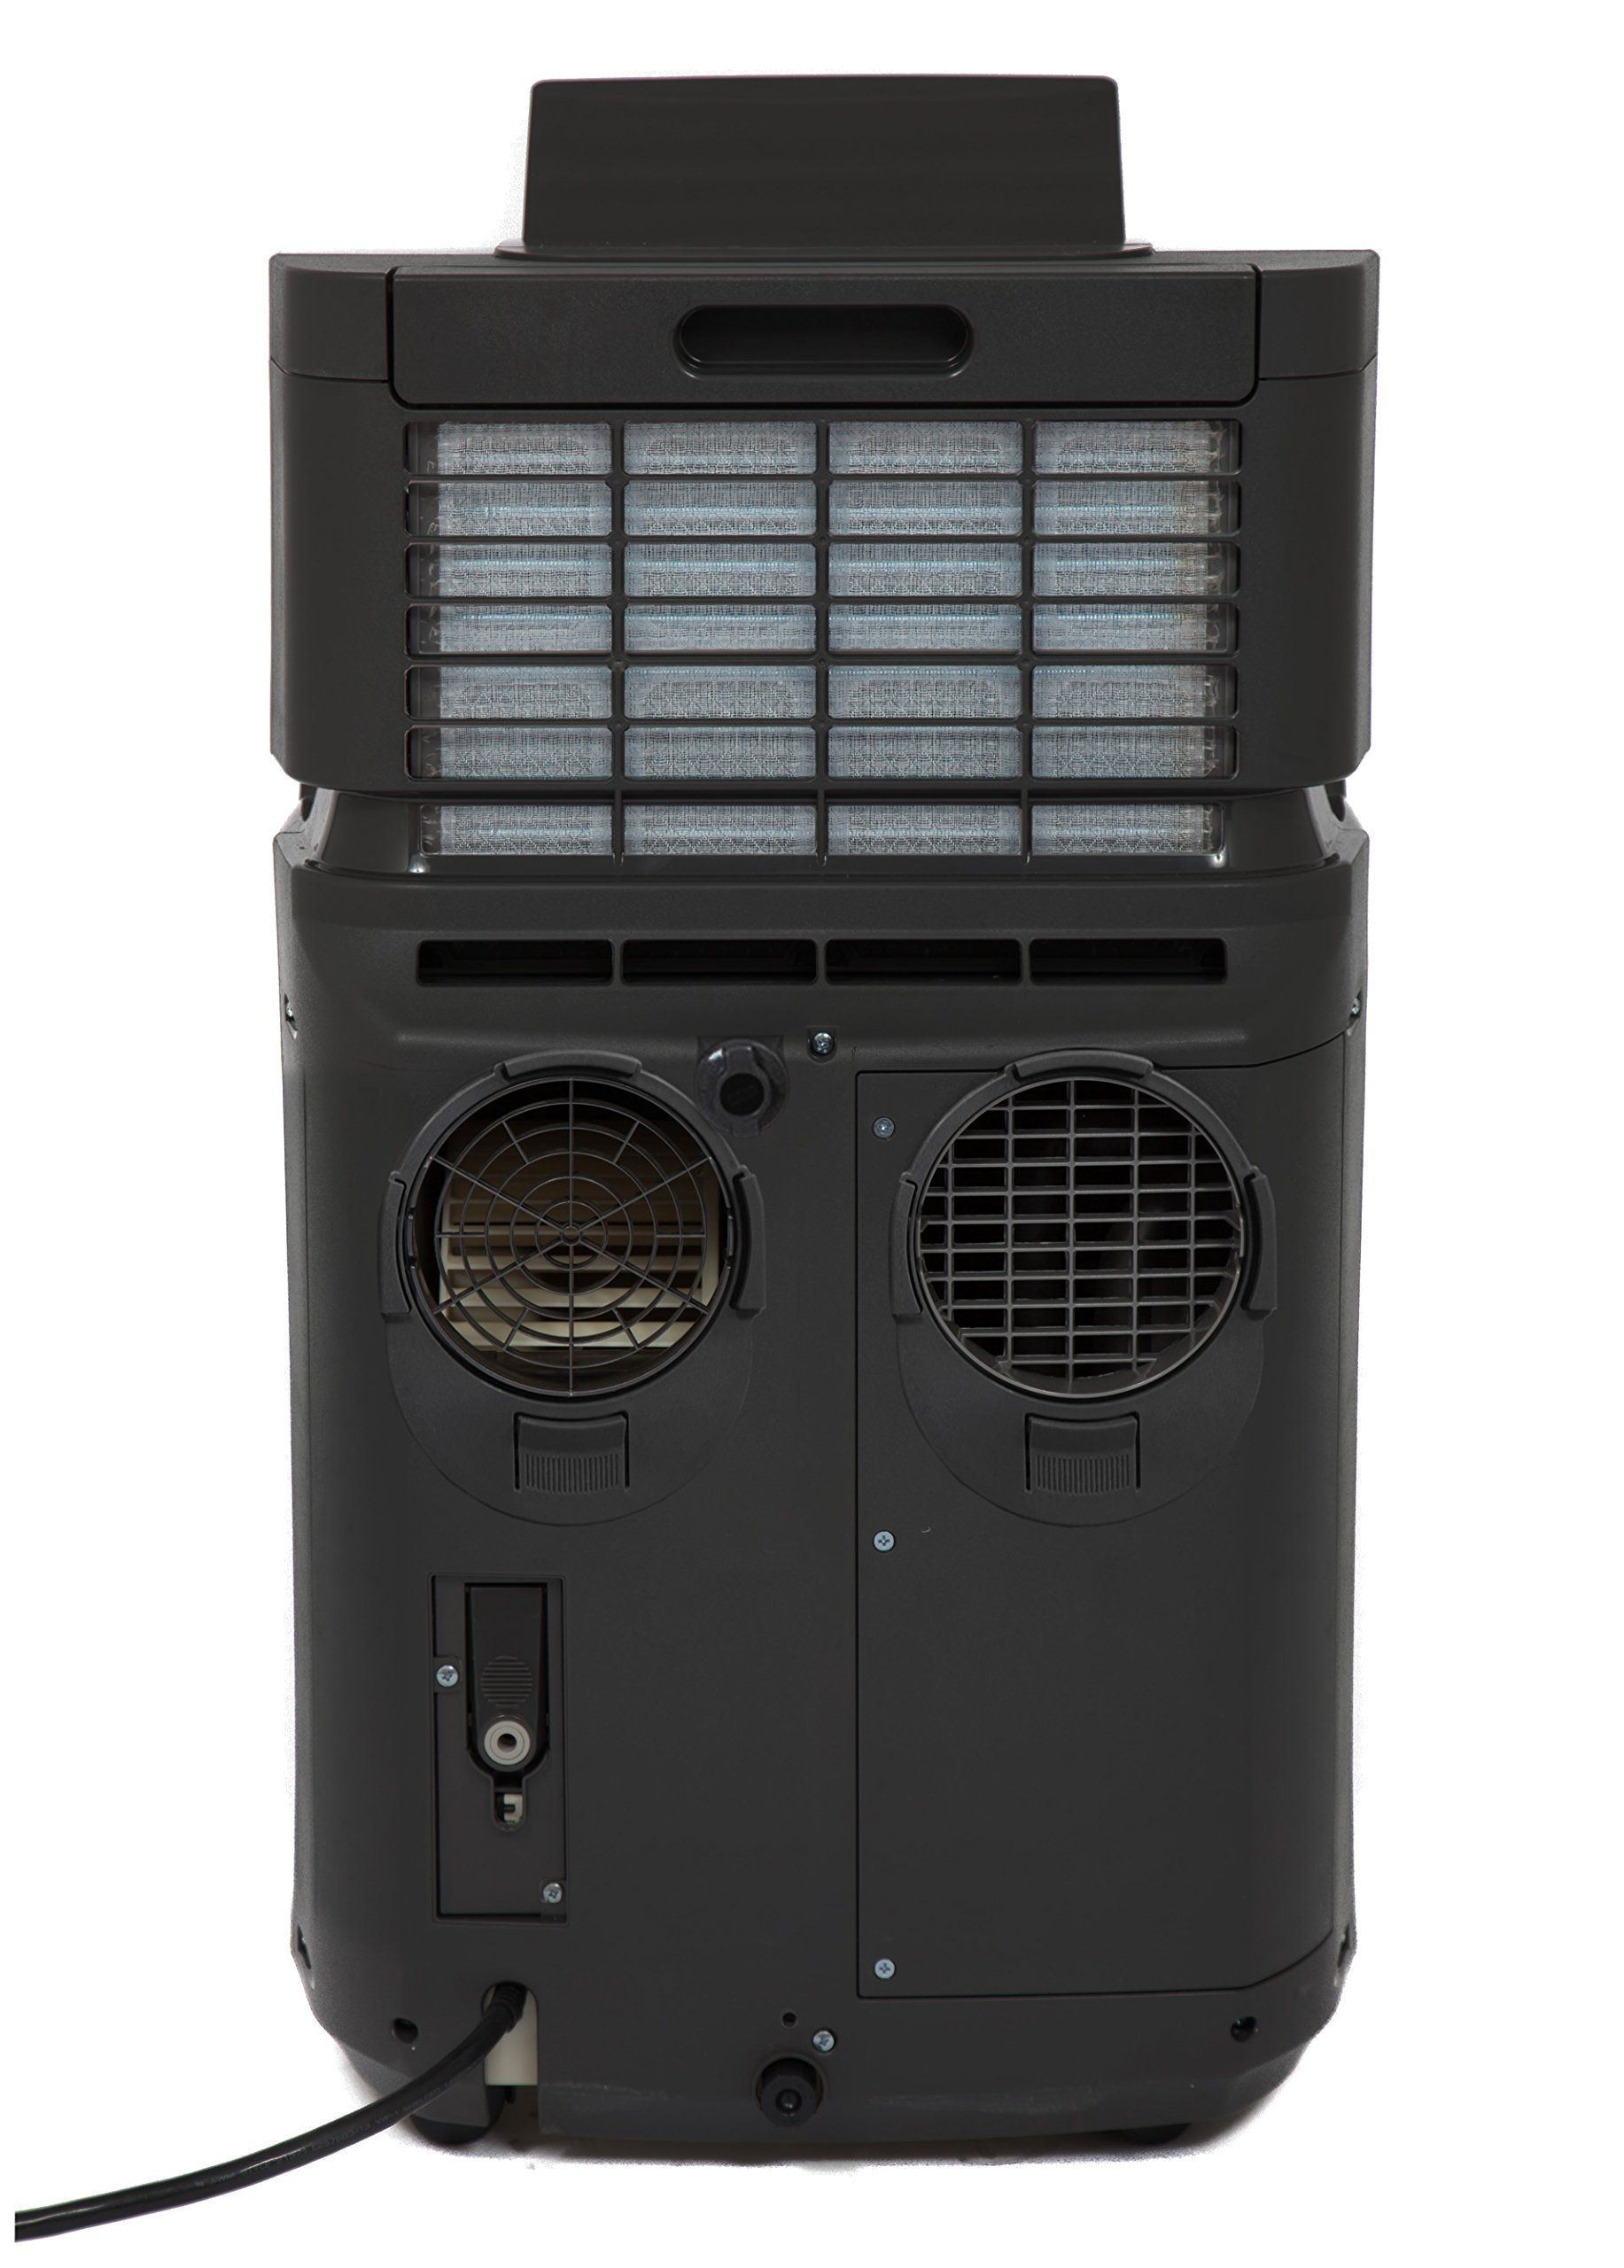 Whynter Arc122dhp Elite 12000 Btu Dual Hose Digital Portable Air Conditioner With Heat And Drain Pump Click On The Image For Additional Details